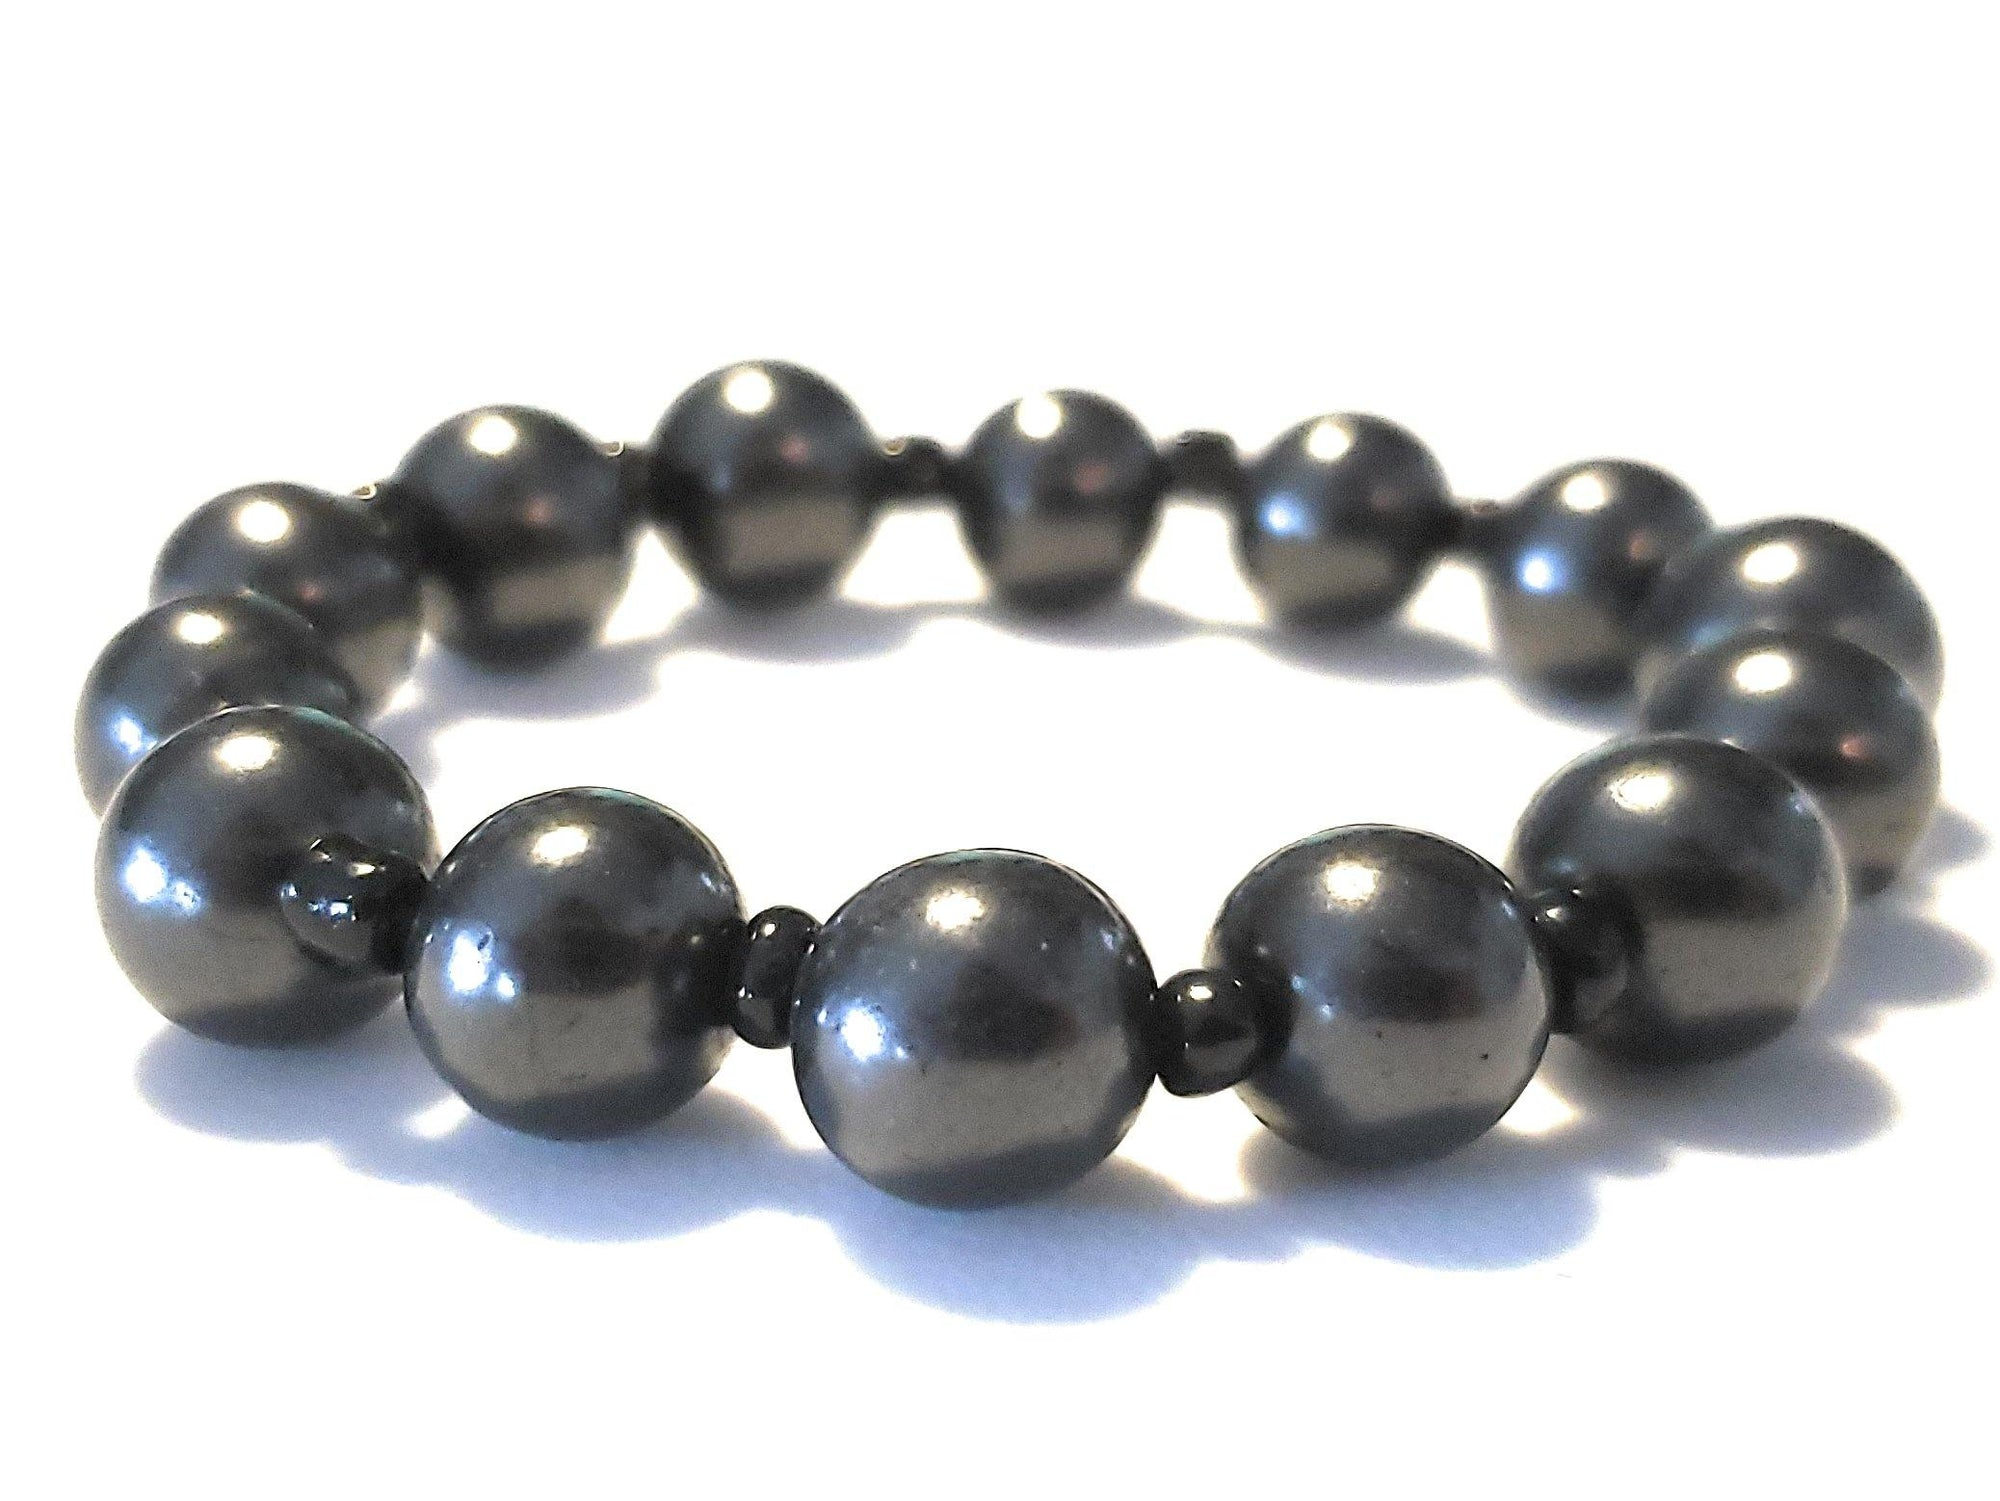 Shungite Bracelet - 10mm Multi-Beads, Adult